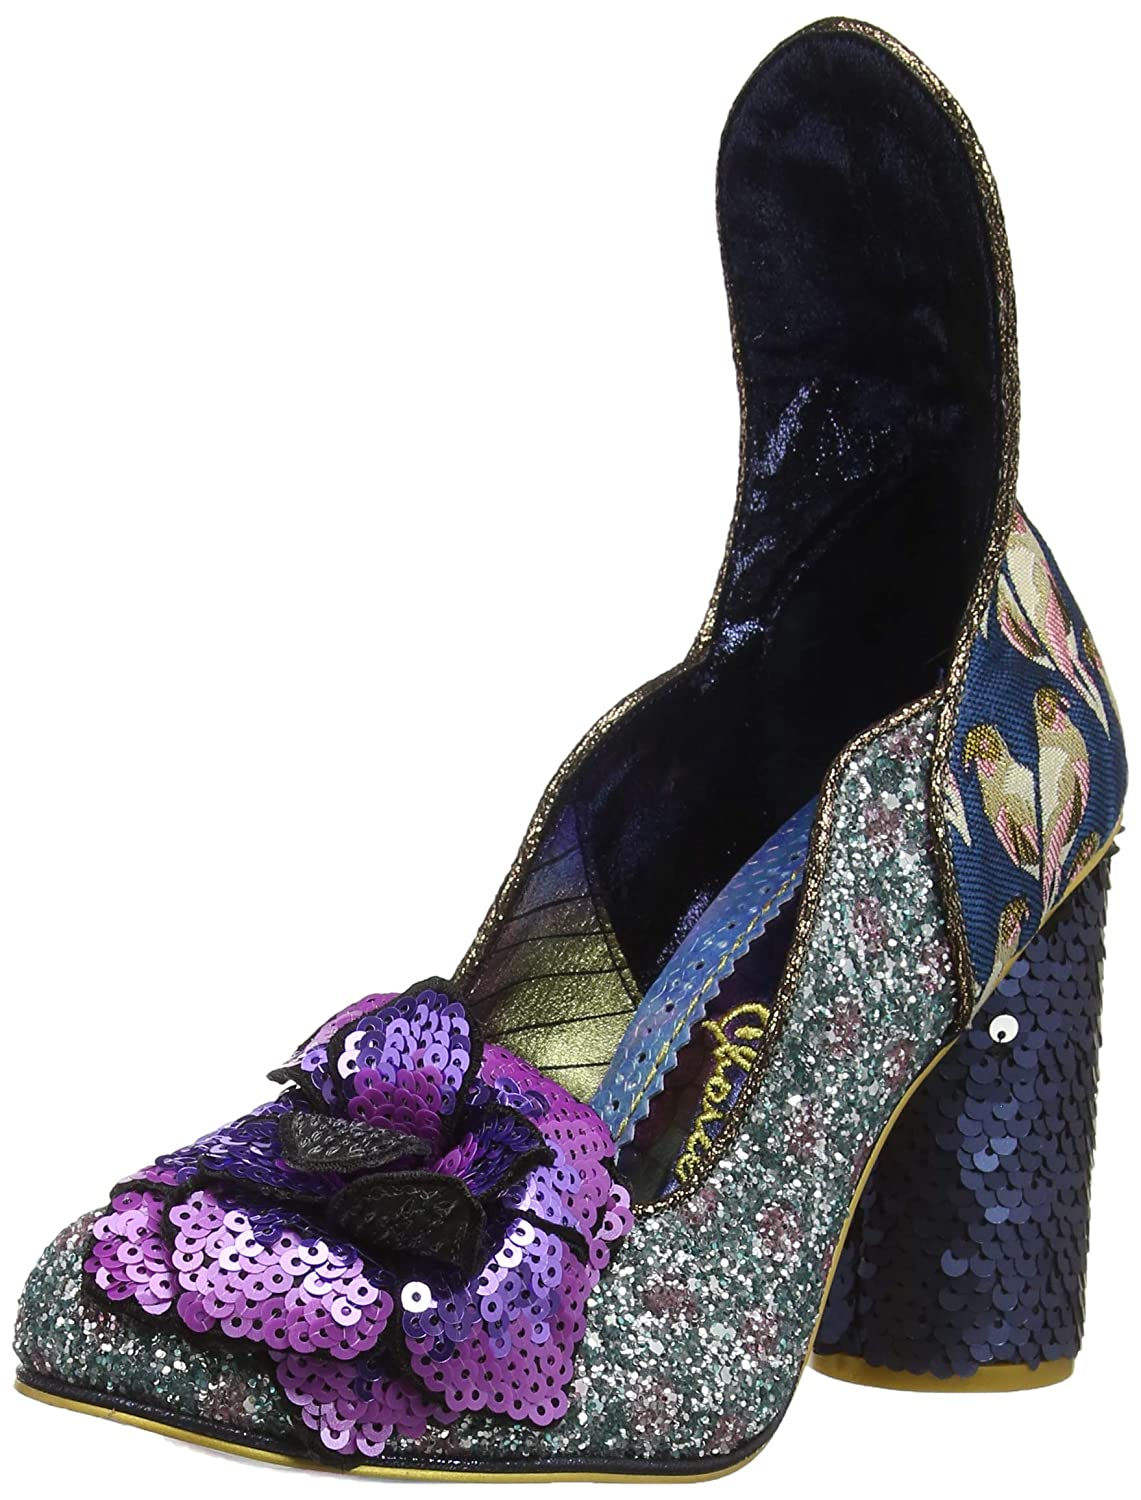 Irregular Irregular Irregular Choice Damen Dear Lover Riemchen Pumps d6a8b3